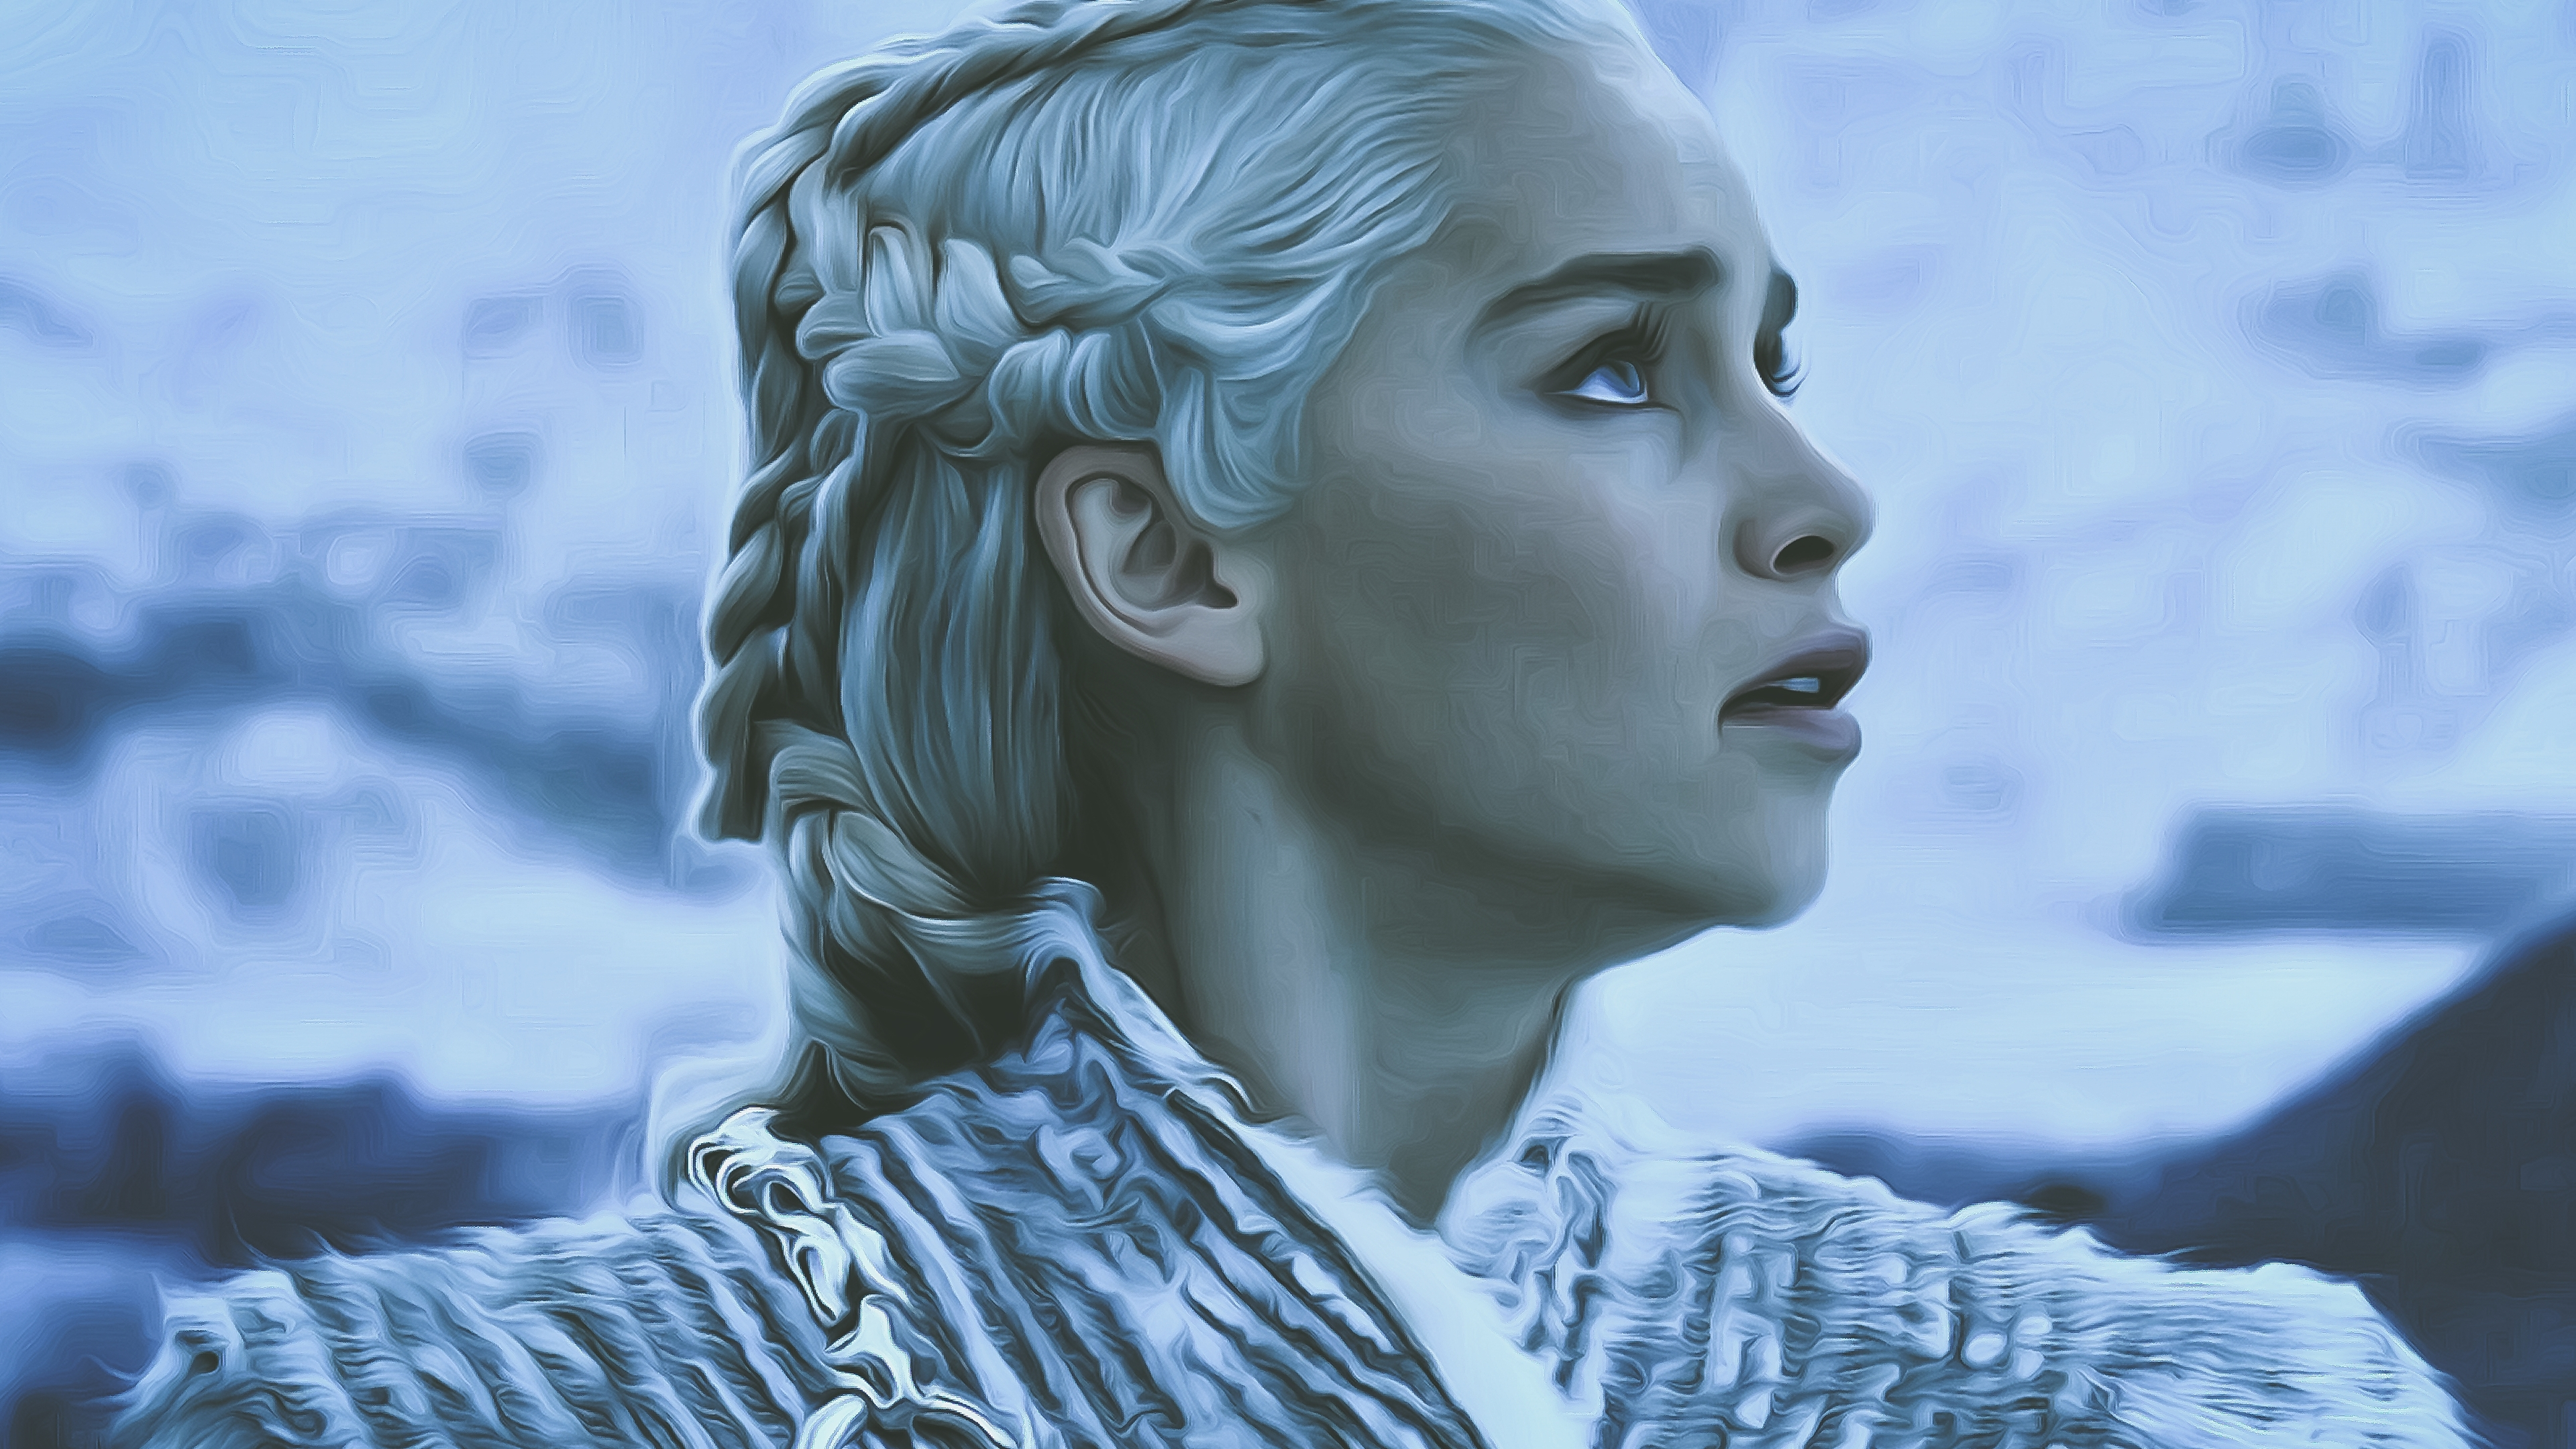 3840x2160 Game Of Thrones Season 8 Daenerys Targaryen 4k Hd 4k